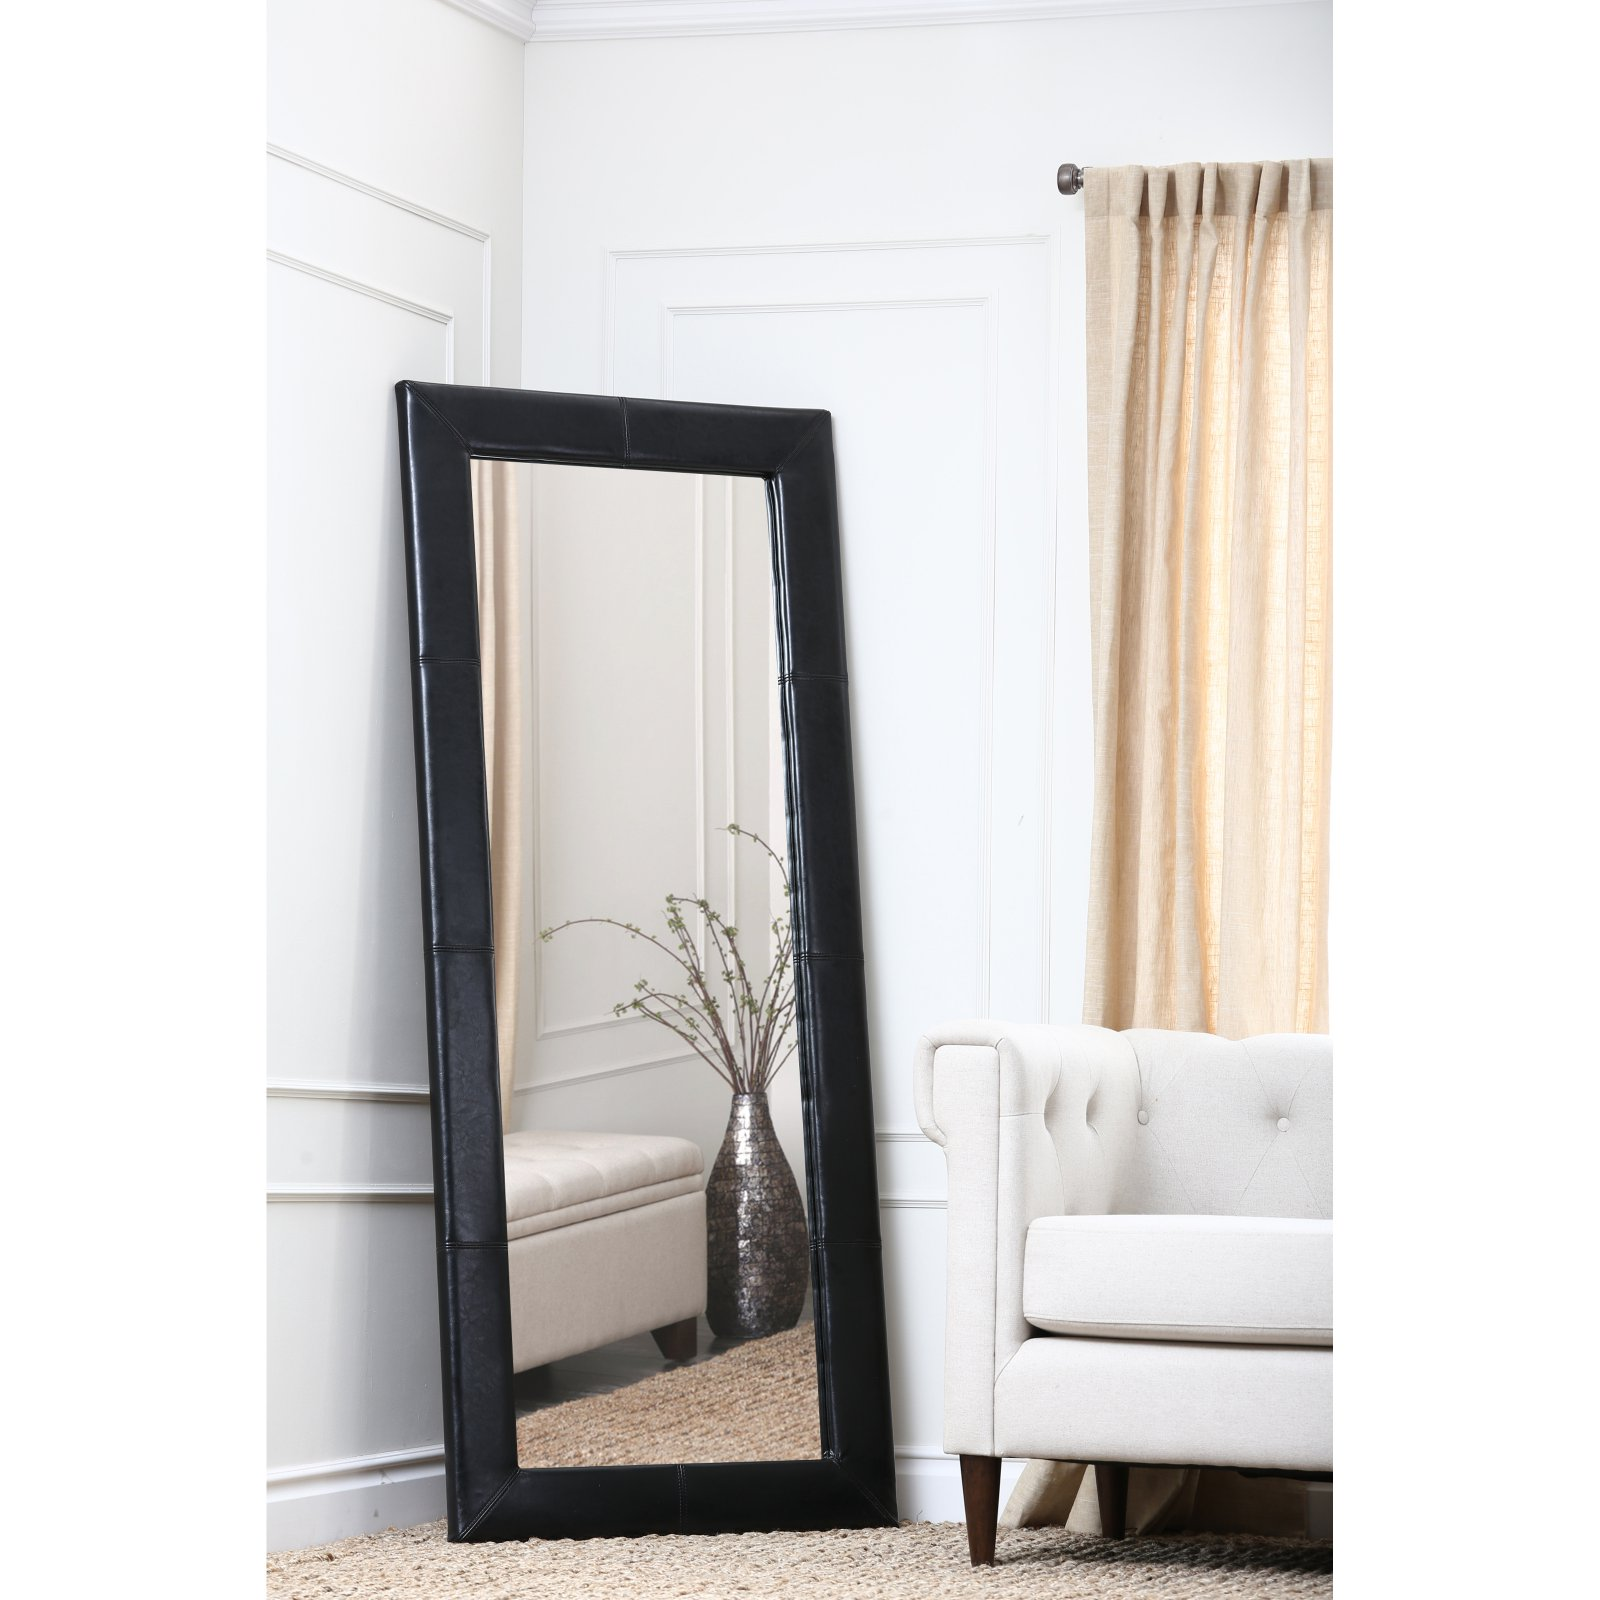 tall standing mirrors. Abbyson Black Leather Floor Mirror - 31W X 70H In. Tall Standing Mirrors